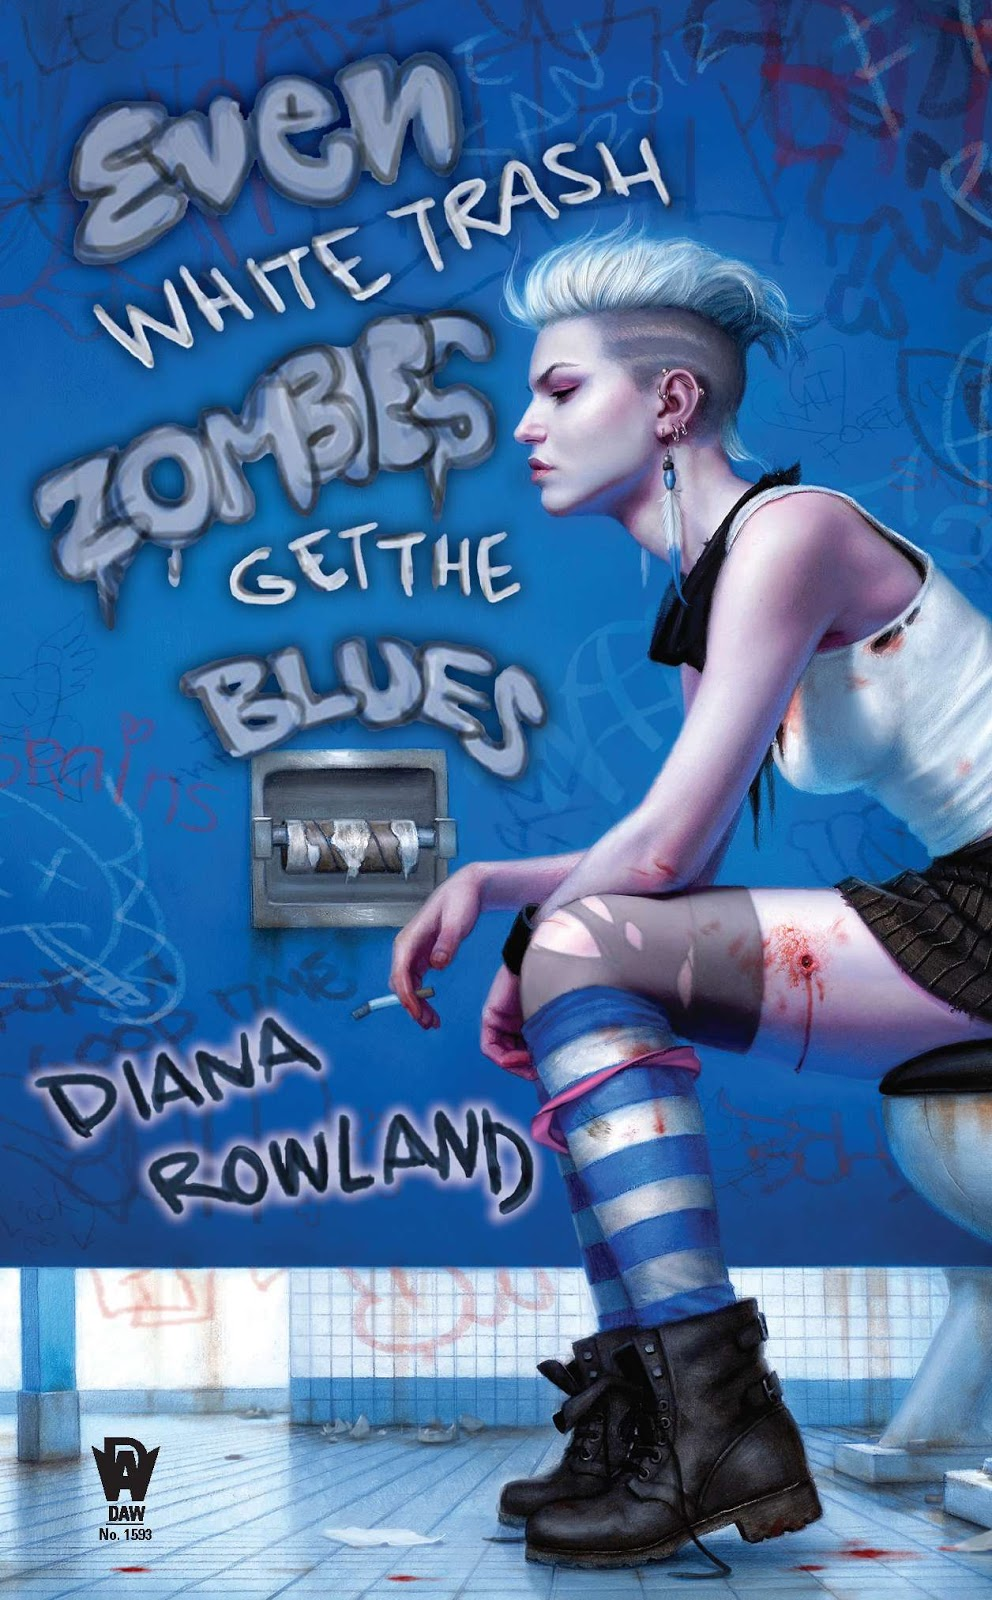 http://nothingbutn9erz.blogspot.co.at/2016/03/even-white-trash-zombies-get-blues-diana-rowland-rezension.html